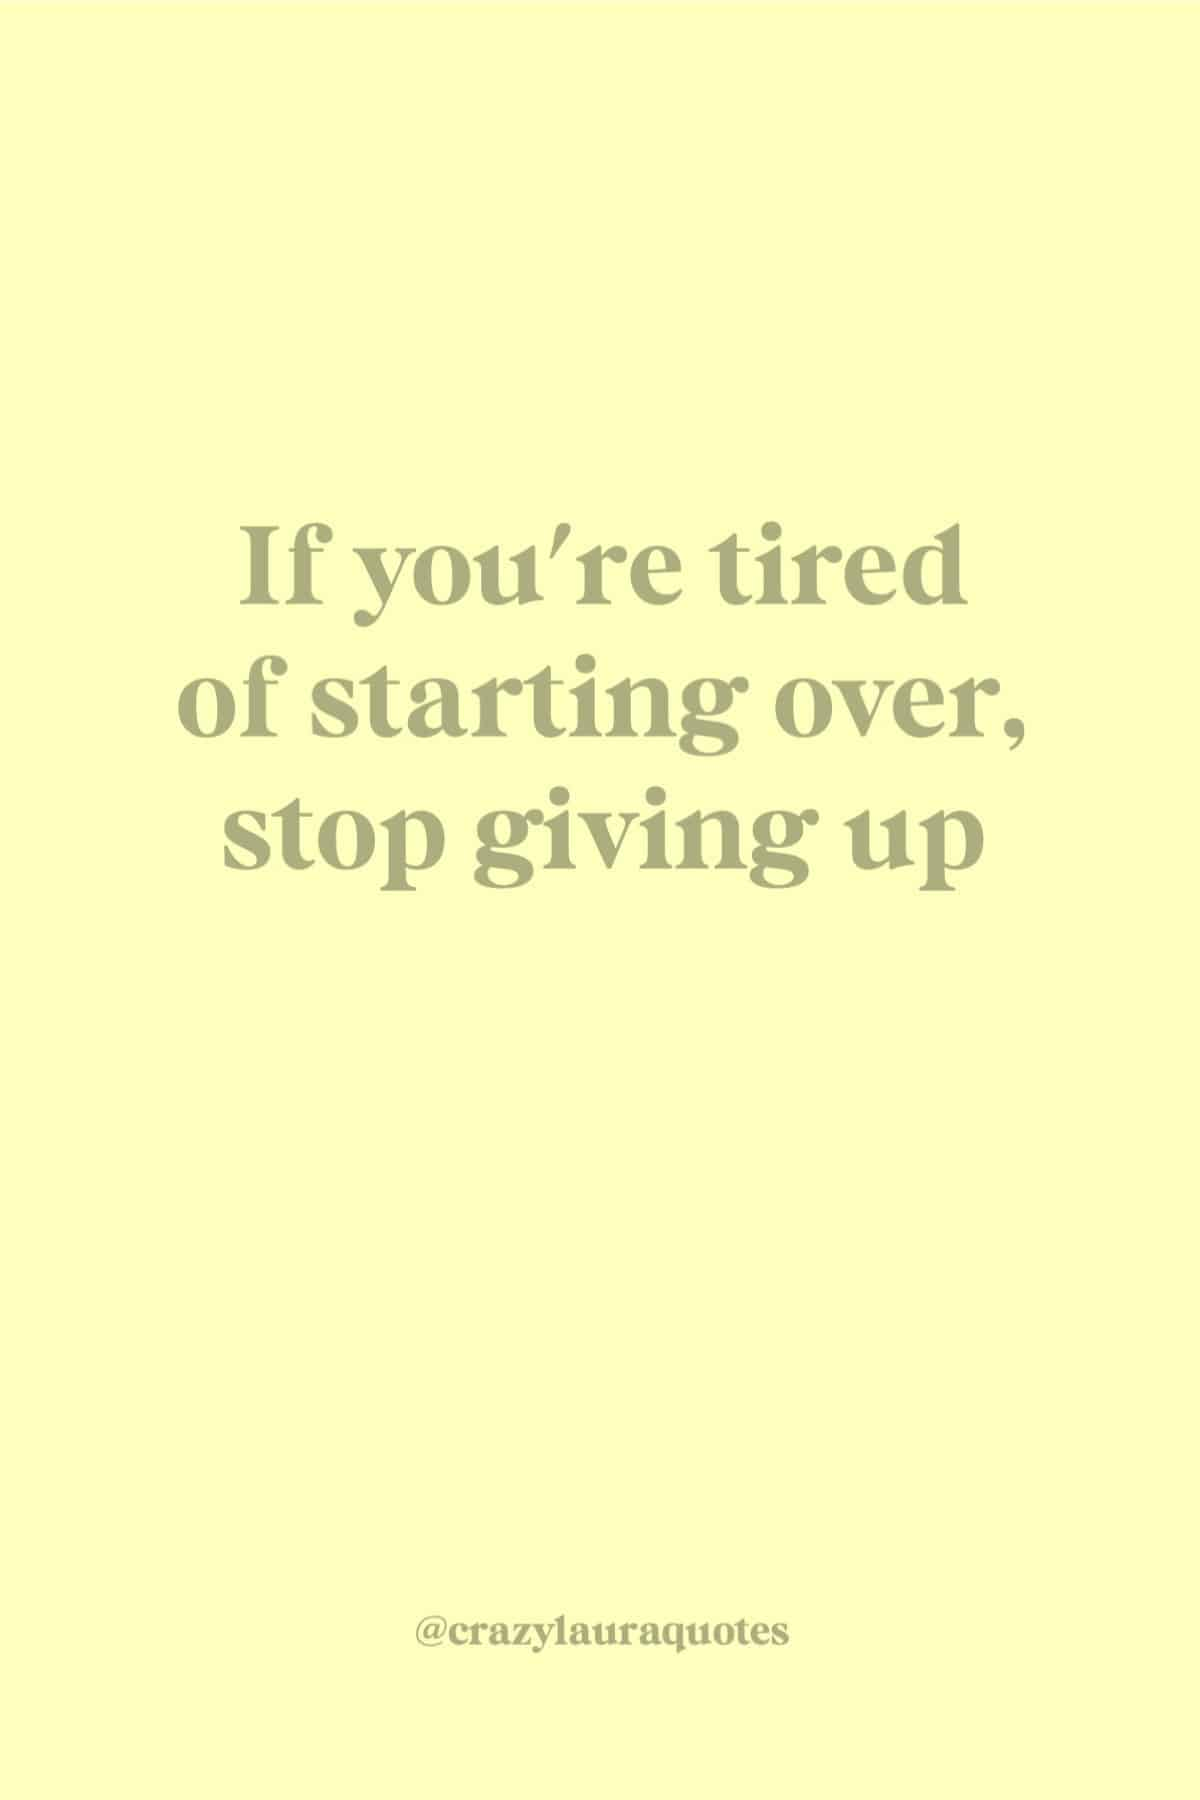 fitness quote about not giving up